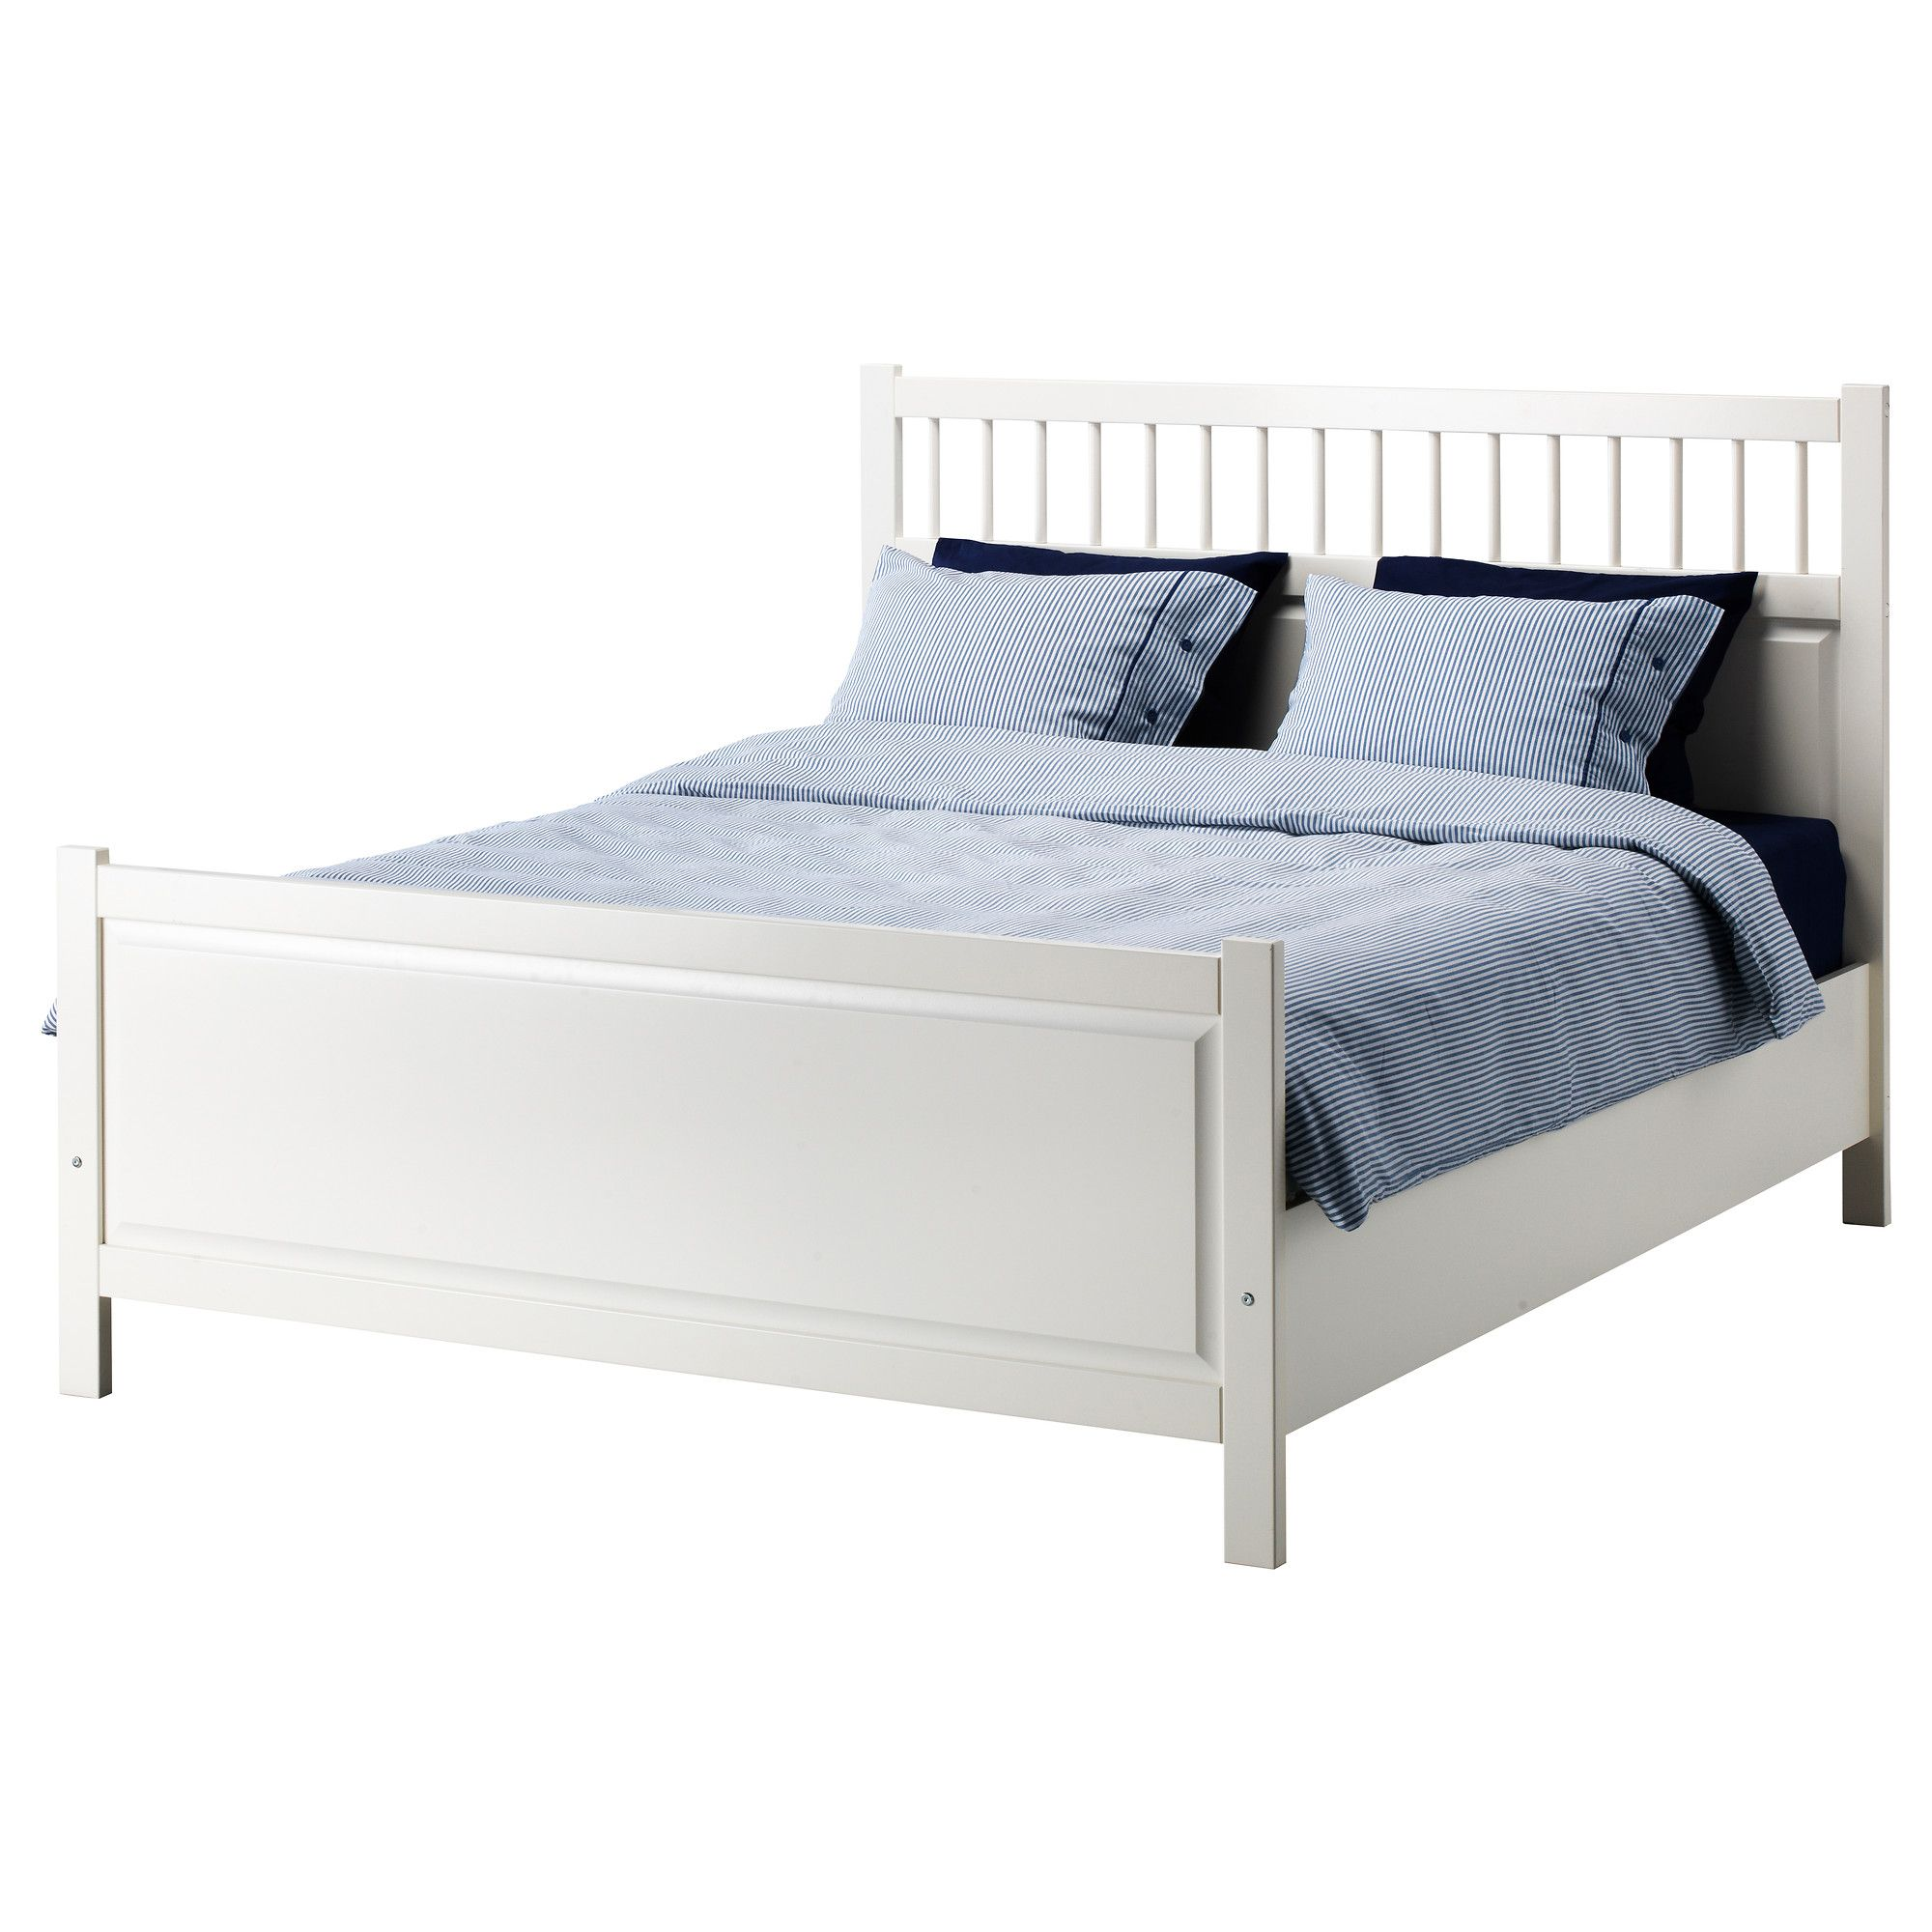 HEMNES Bed frame Full IKEA for Kaylee? Decorating a new home Pinterest HEMNES, Bed